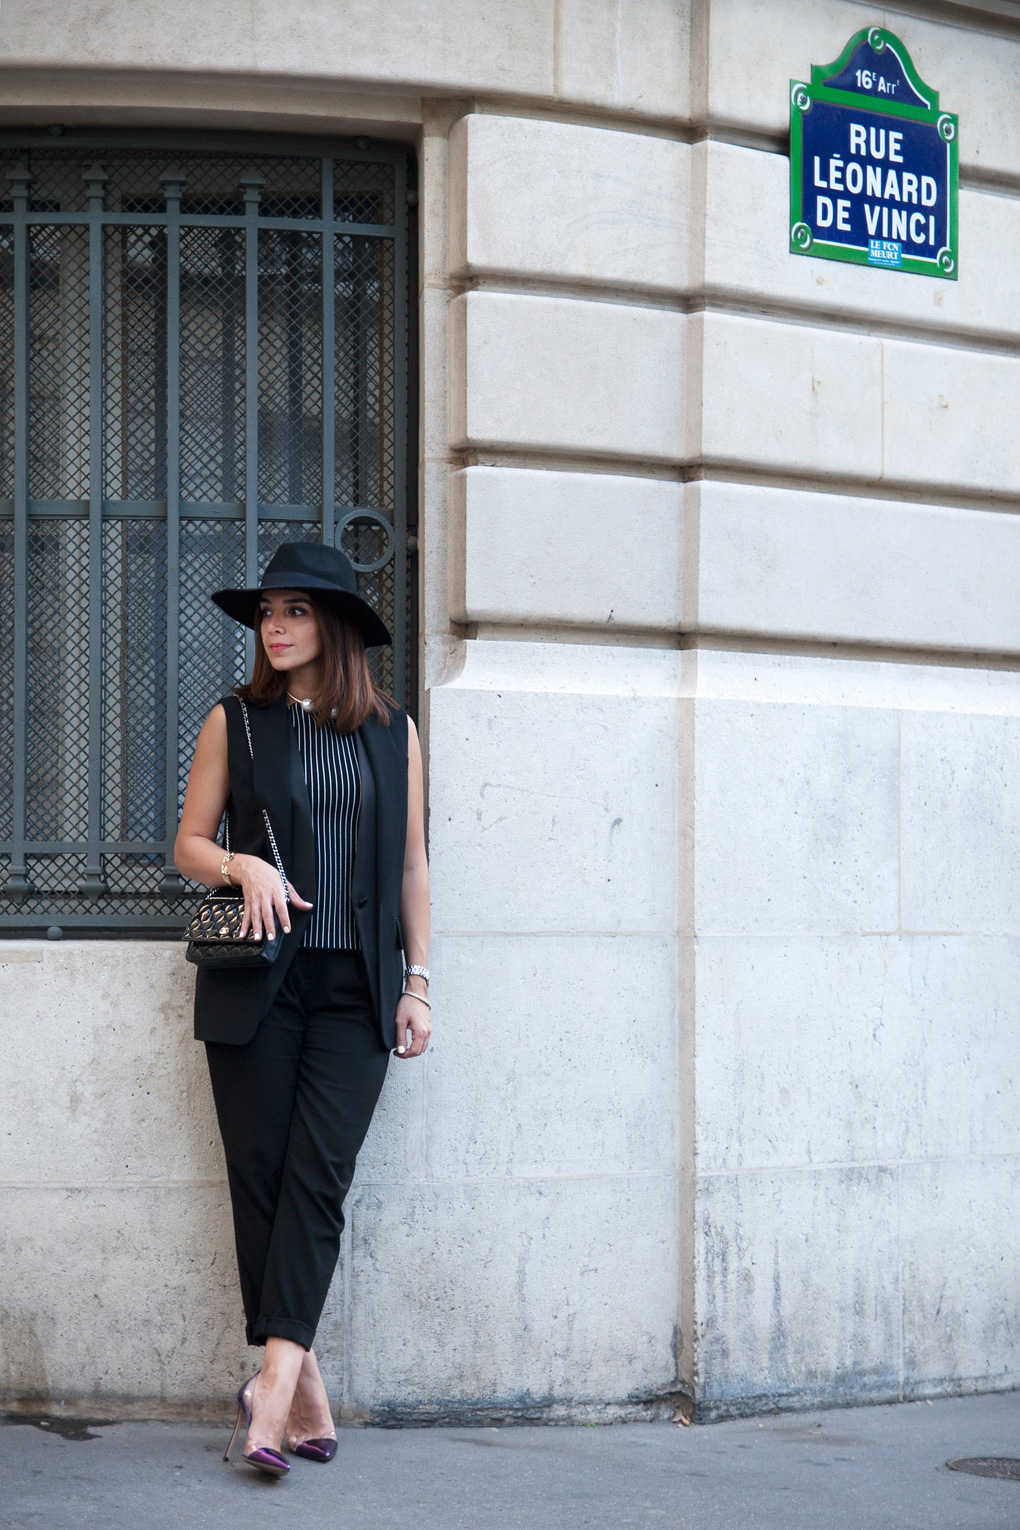 Lyla_Loves_Fashion_Alexander_wang_Paris_Fashion_Week_Street_Style_1782